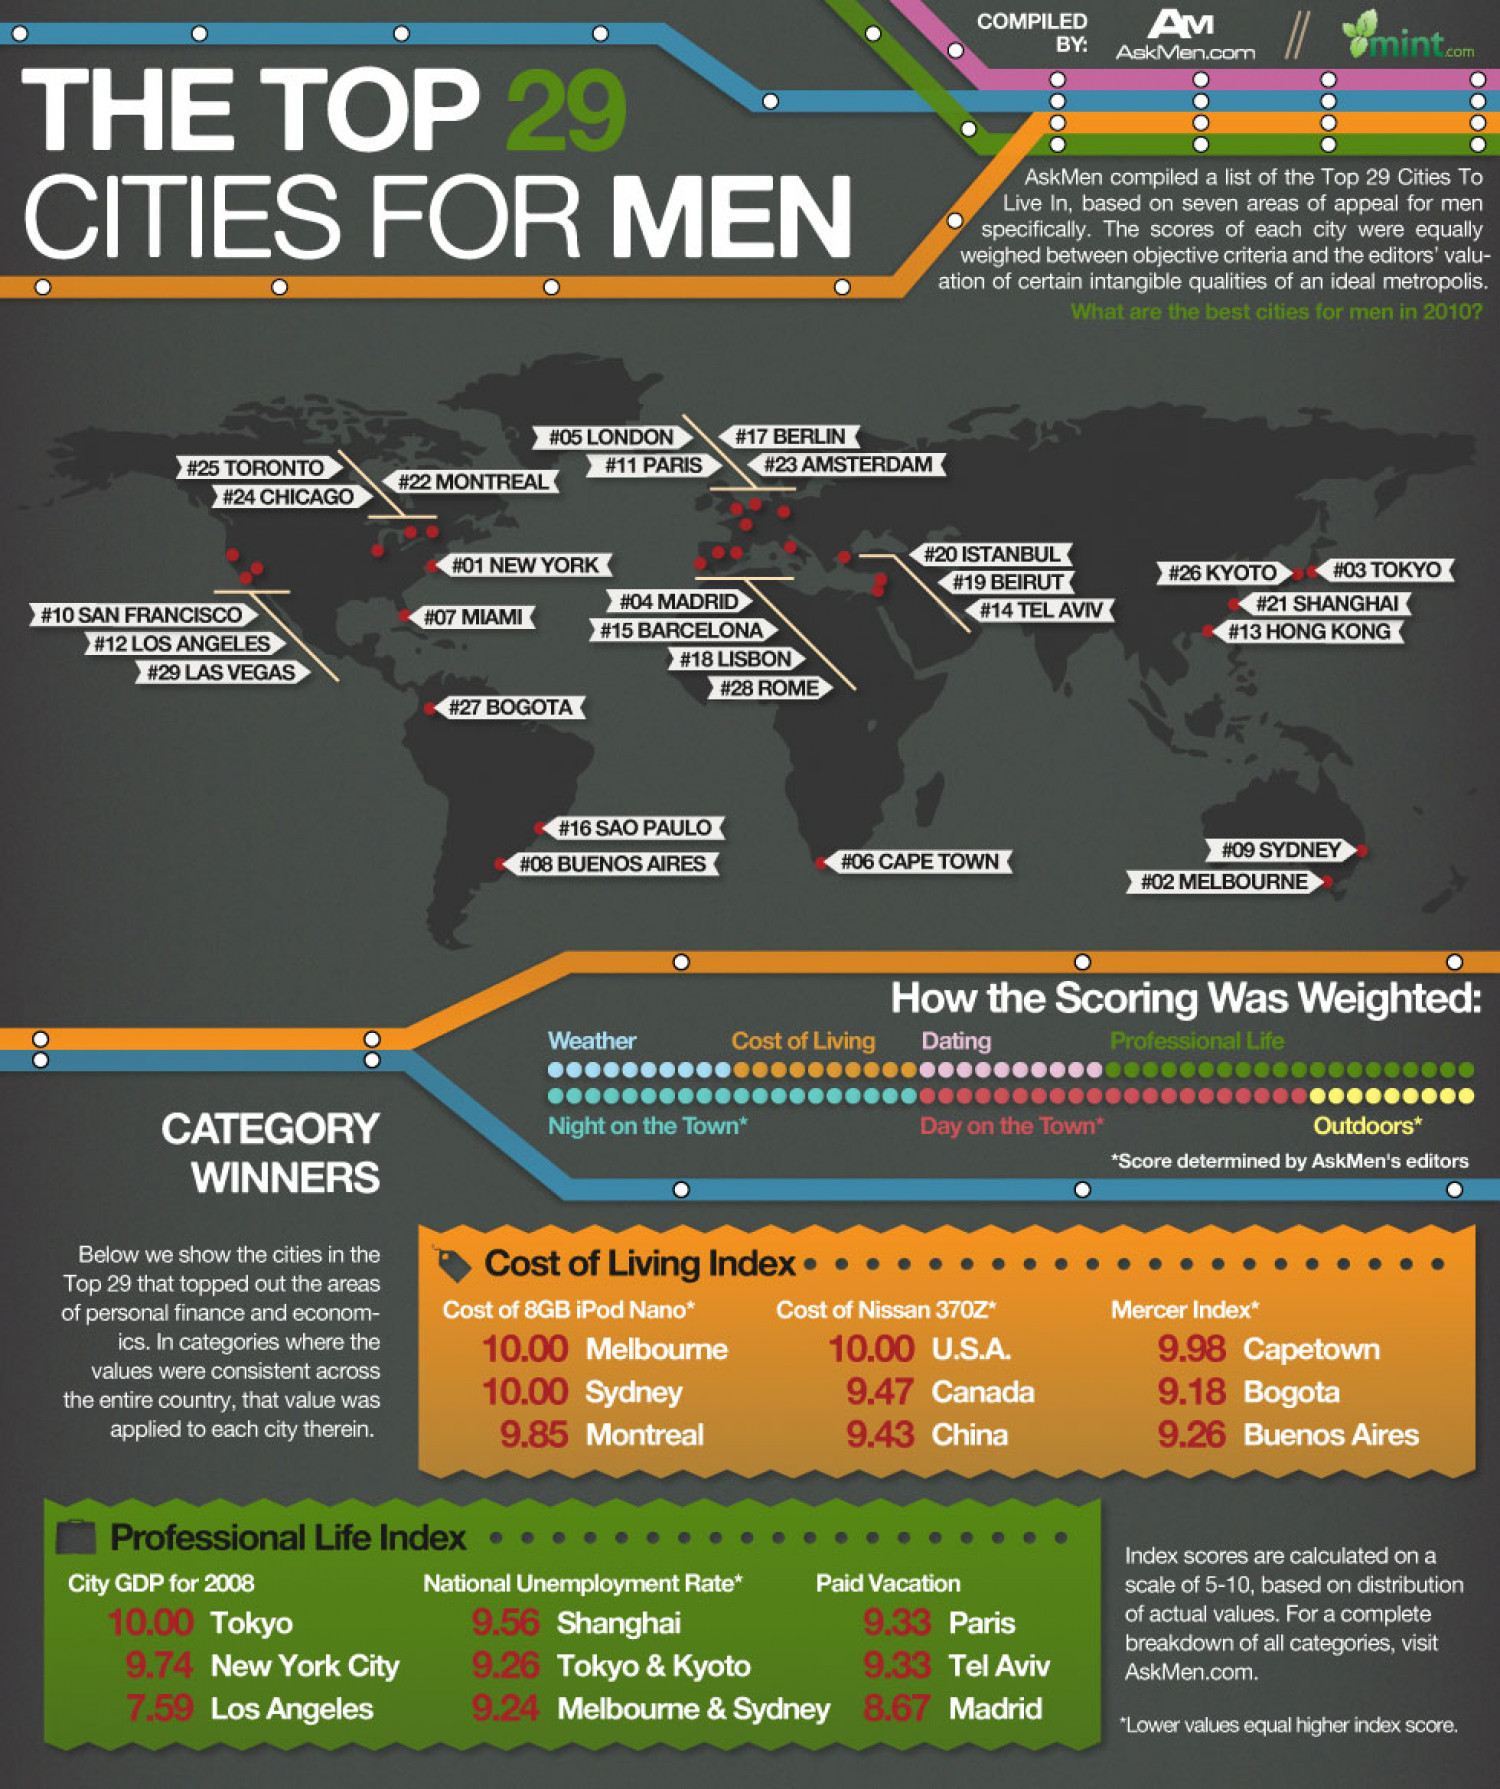 The Top 29 Cities for Men Infographic